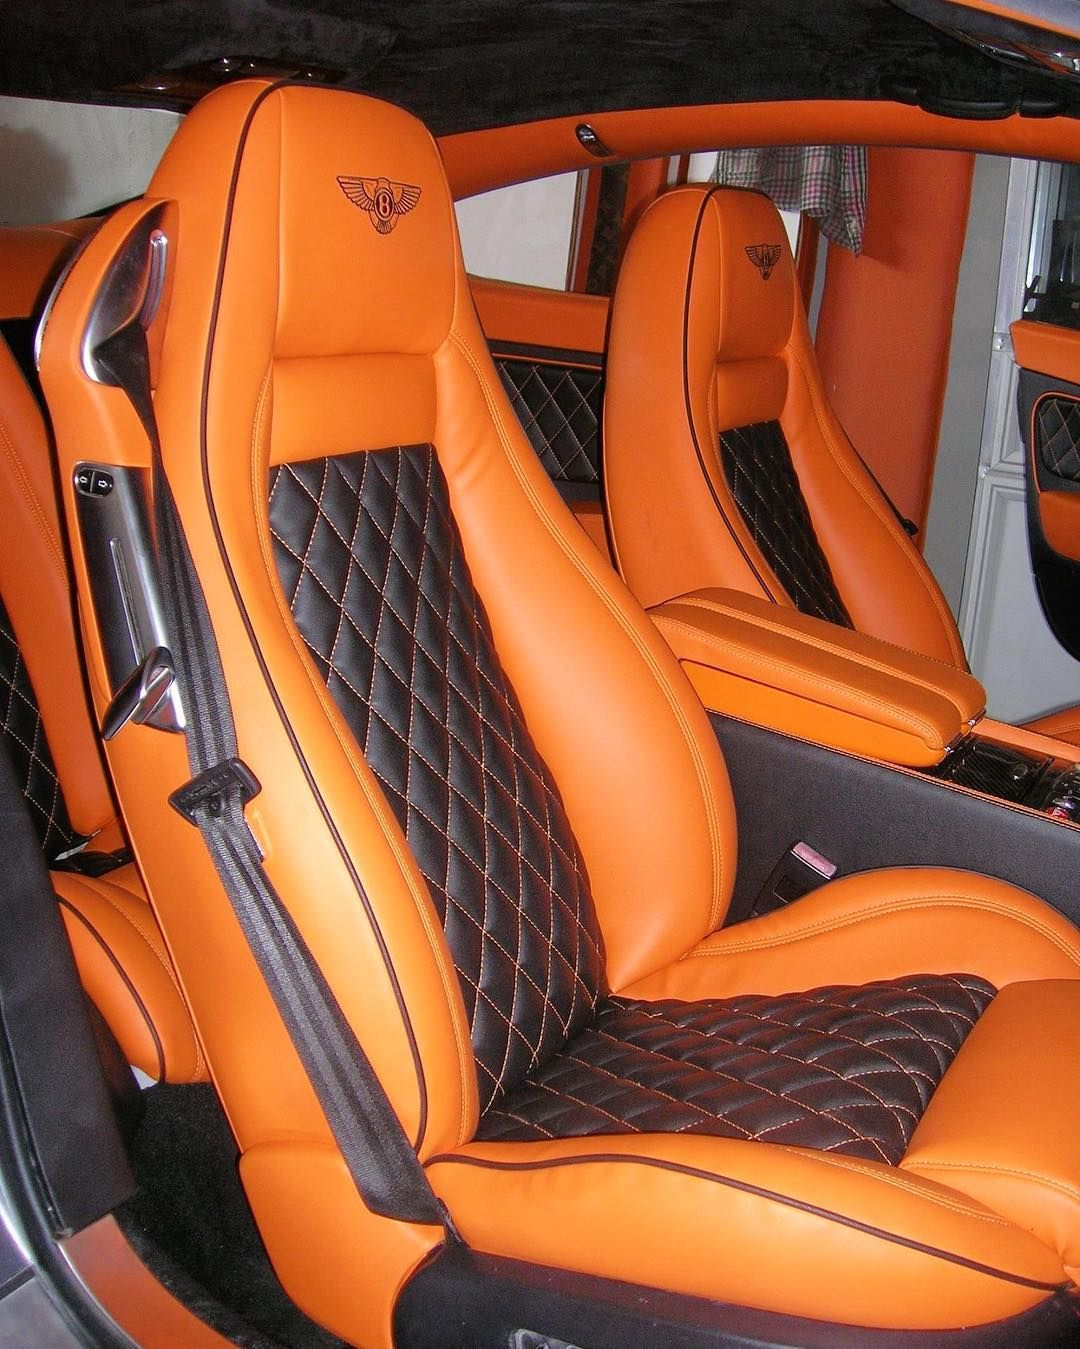 Bentley Continental Gt Custom Interior Orange And Black Diamond Stitch Seats And Door Panels Car Upholstery Car Interior Upholstery Leather Car Seat Covers